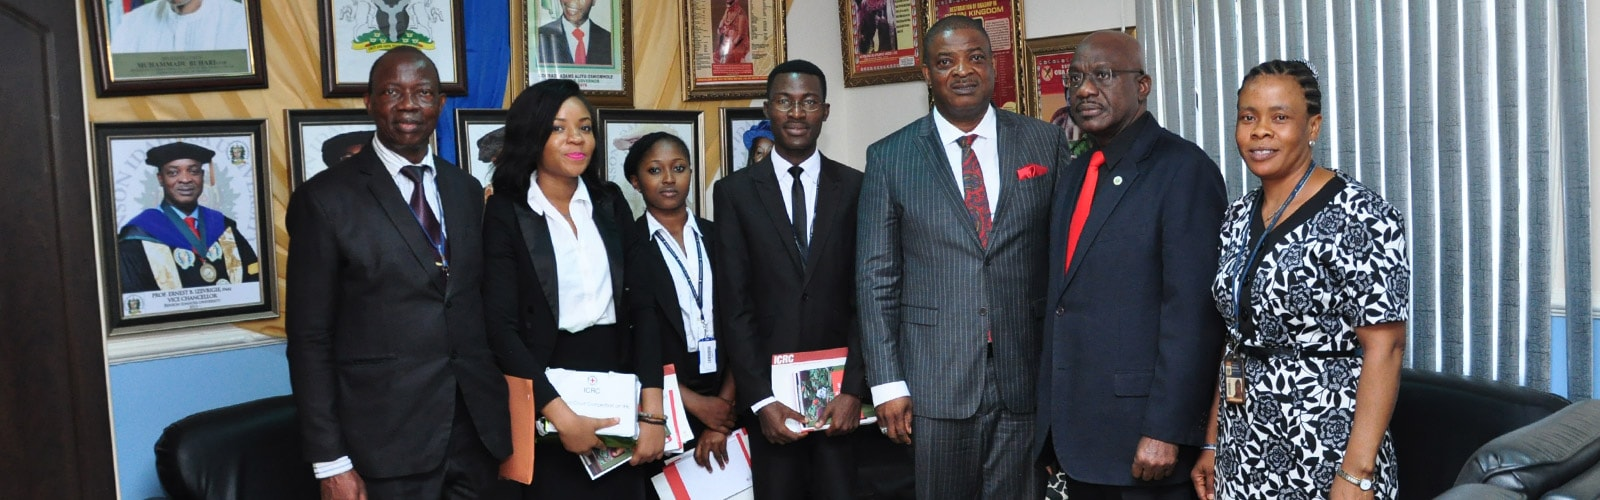 BIU-FACULTY-OF-LAW-WINS-1ST-PRIZE-IN-BRIEF-MEMORIAL-AT-5th-EDITON-OF-MOOT-COURT-min